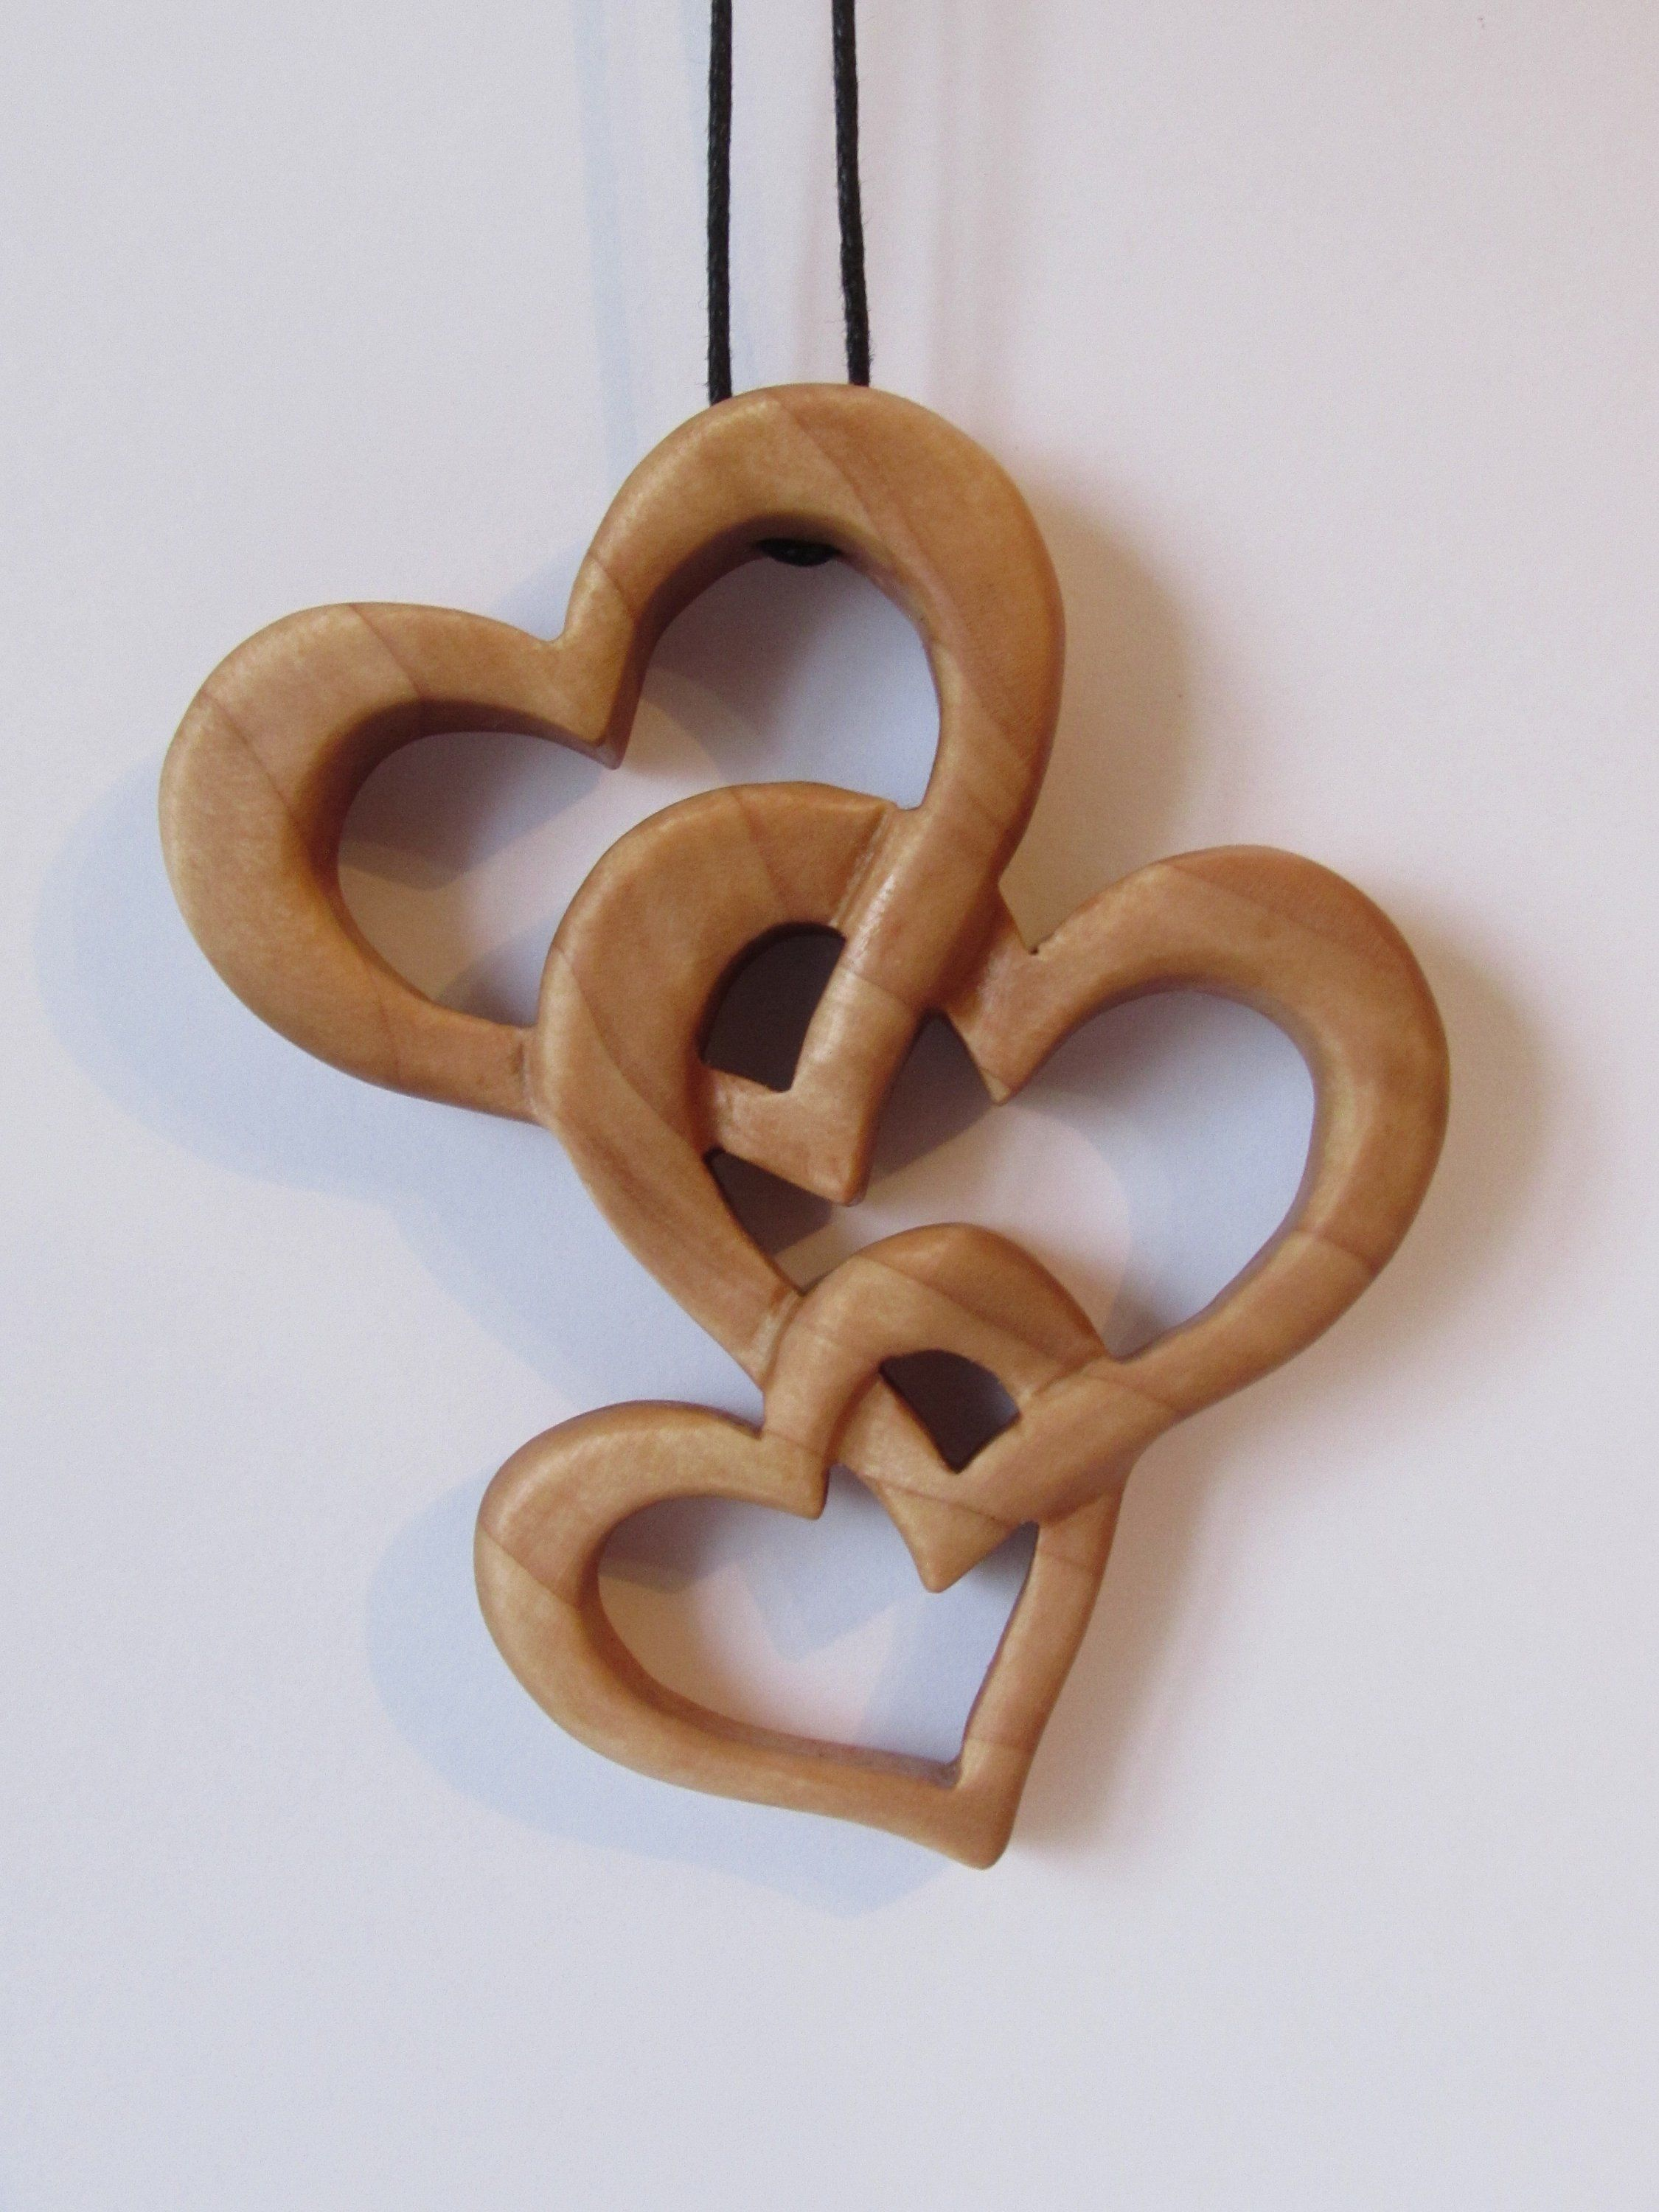 Wooden Heart Necklace Wood Pendant Handmade Gift Valentine Gift Wood Heart Necklace By Handmadelilyr On Etsy Simple Wood Carving Wooden Hearts Wood Pendant